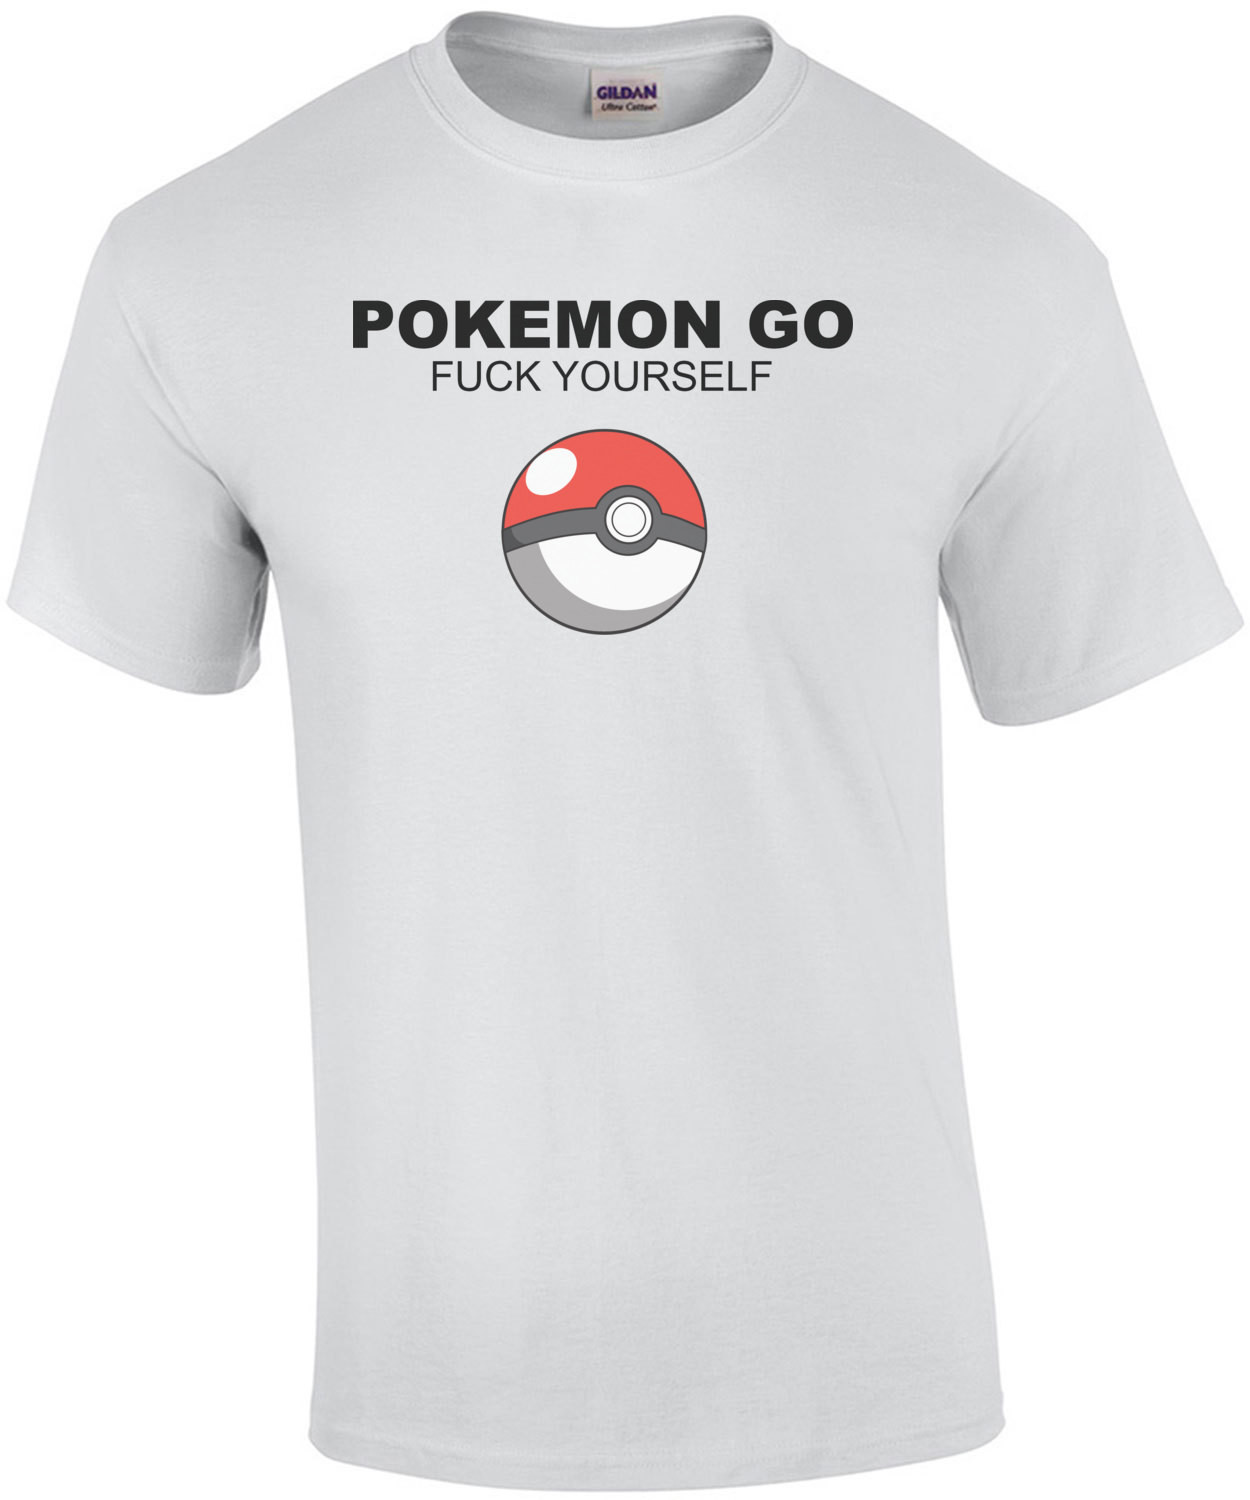 Pokemon Go Fuck Yourself - Parody Pokemon Go T-Shirt